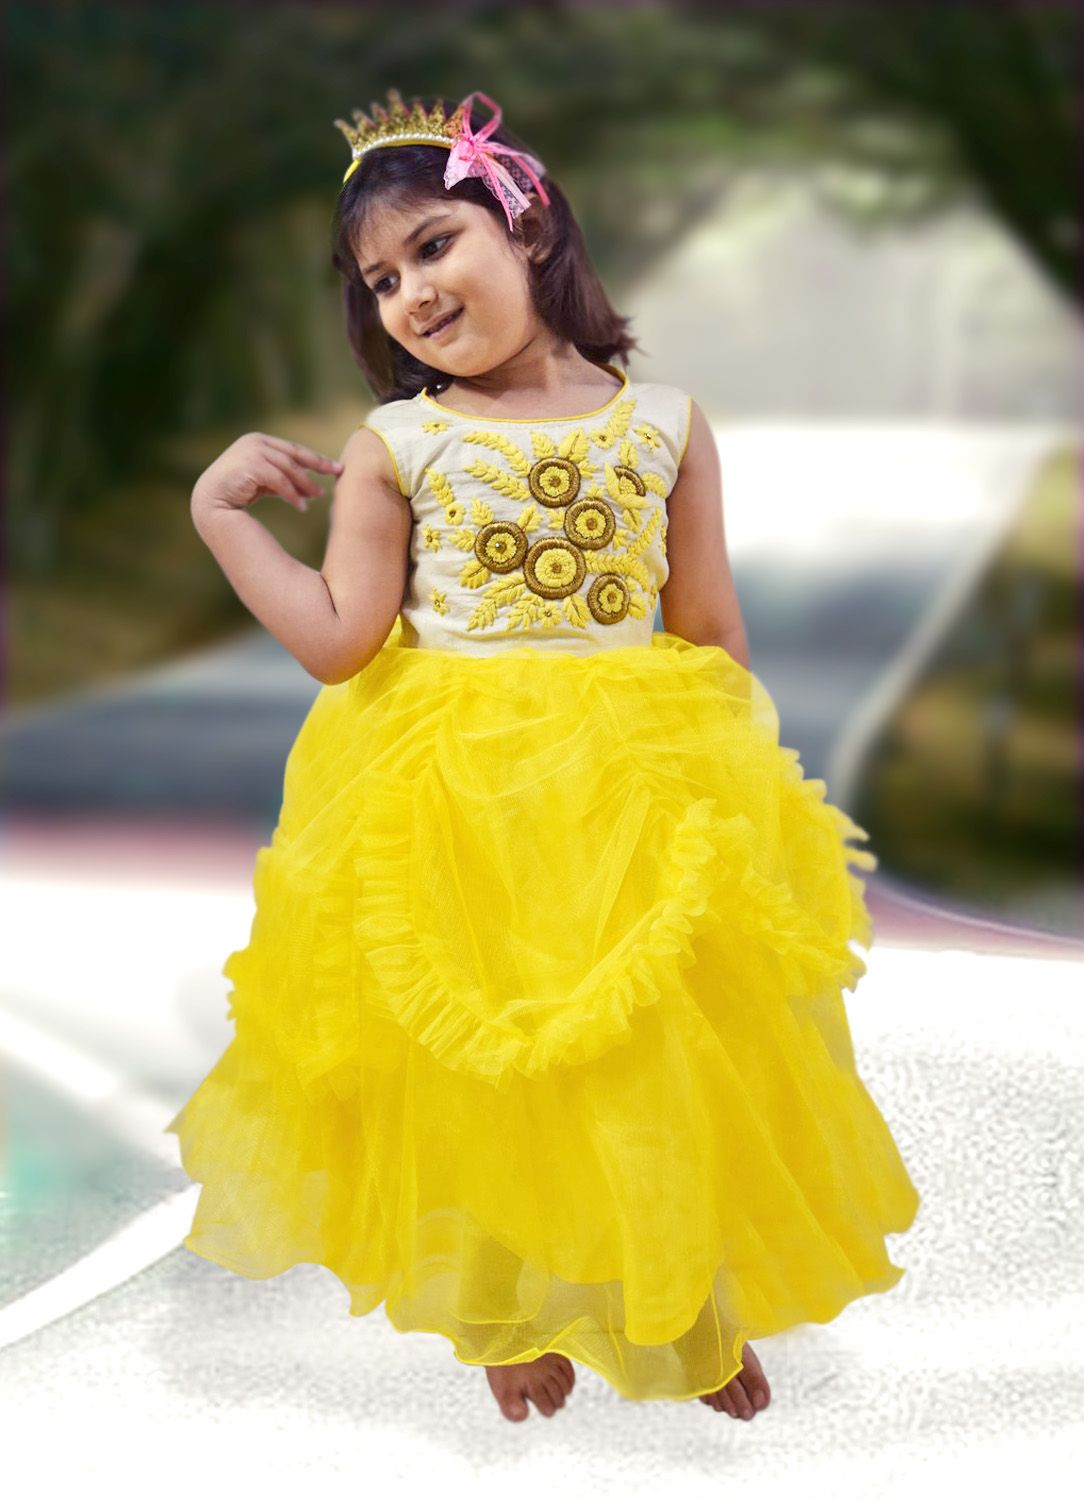 Buy online in India the beautiful party dress for your young baby ...